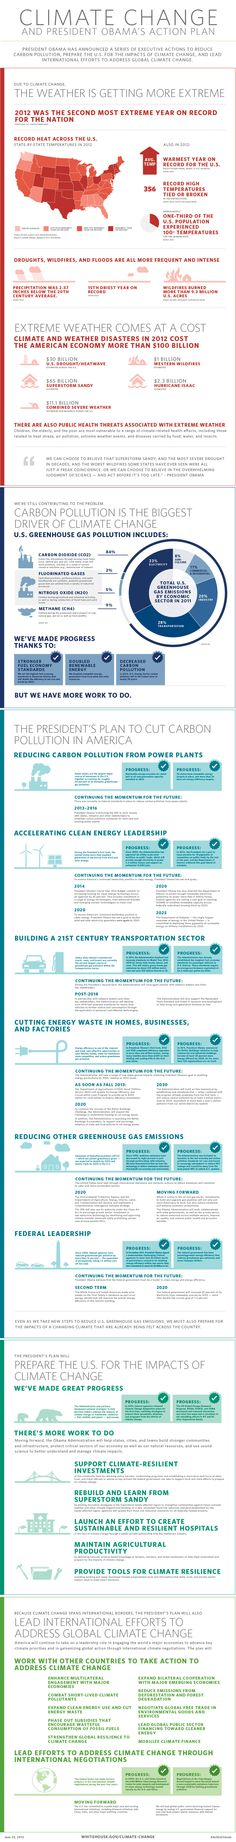 President Obama's plan to address climate change and transition to clean energy.